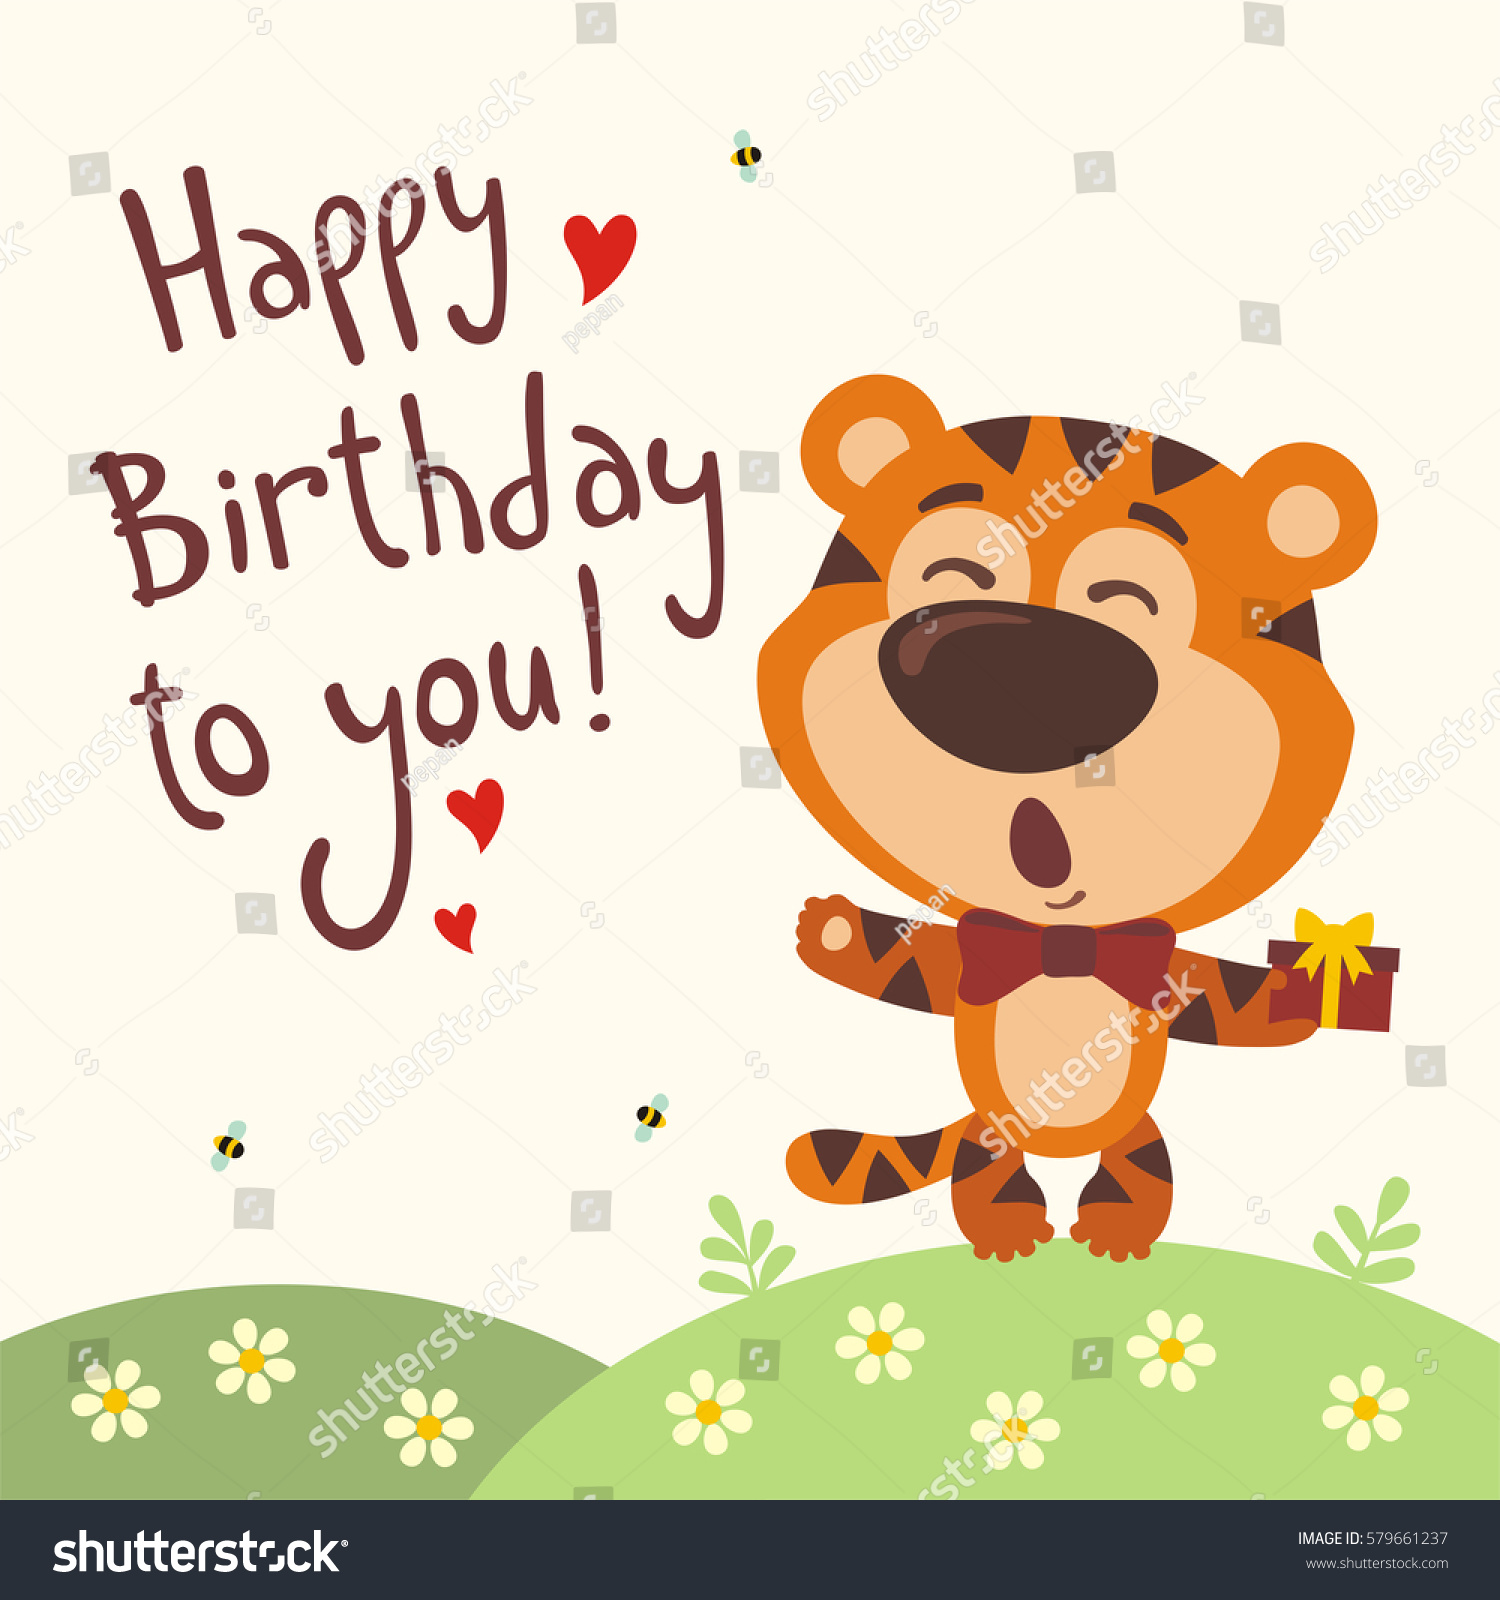 Funny tiger sings song happy birthday stock vector royalty free funny tiger sings song happy birthday to you greeting card in cartoon style m4hsunfo